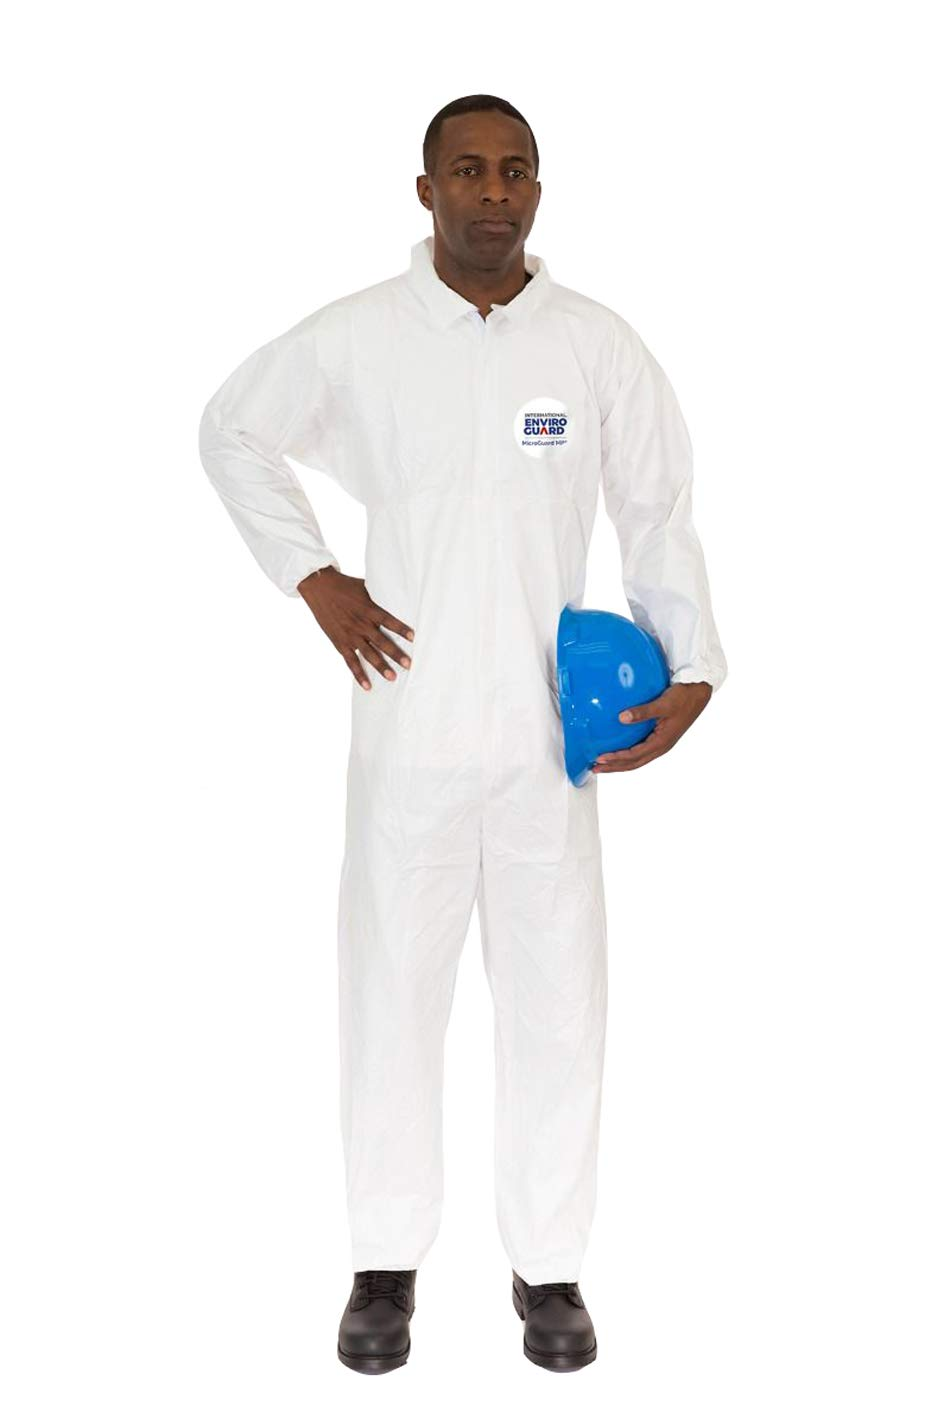 Microguard MP Microporous (White) | Particulate & Splash Protection/Disposable Hazmat Coverall with Elastic Wrist & Ankle for Paint and Particulates (XL, Case of 25) by Microguard MP (Image #1)